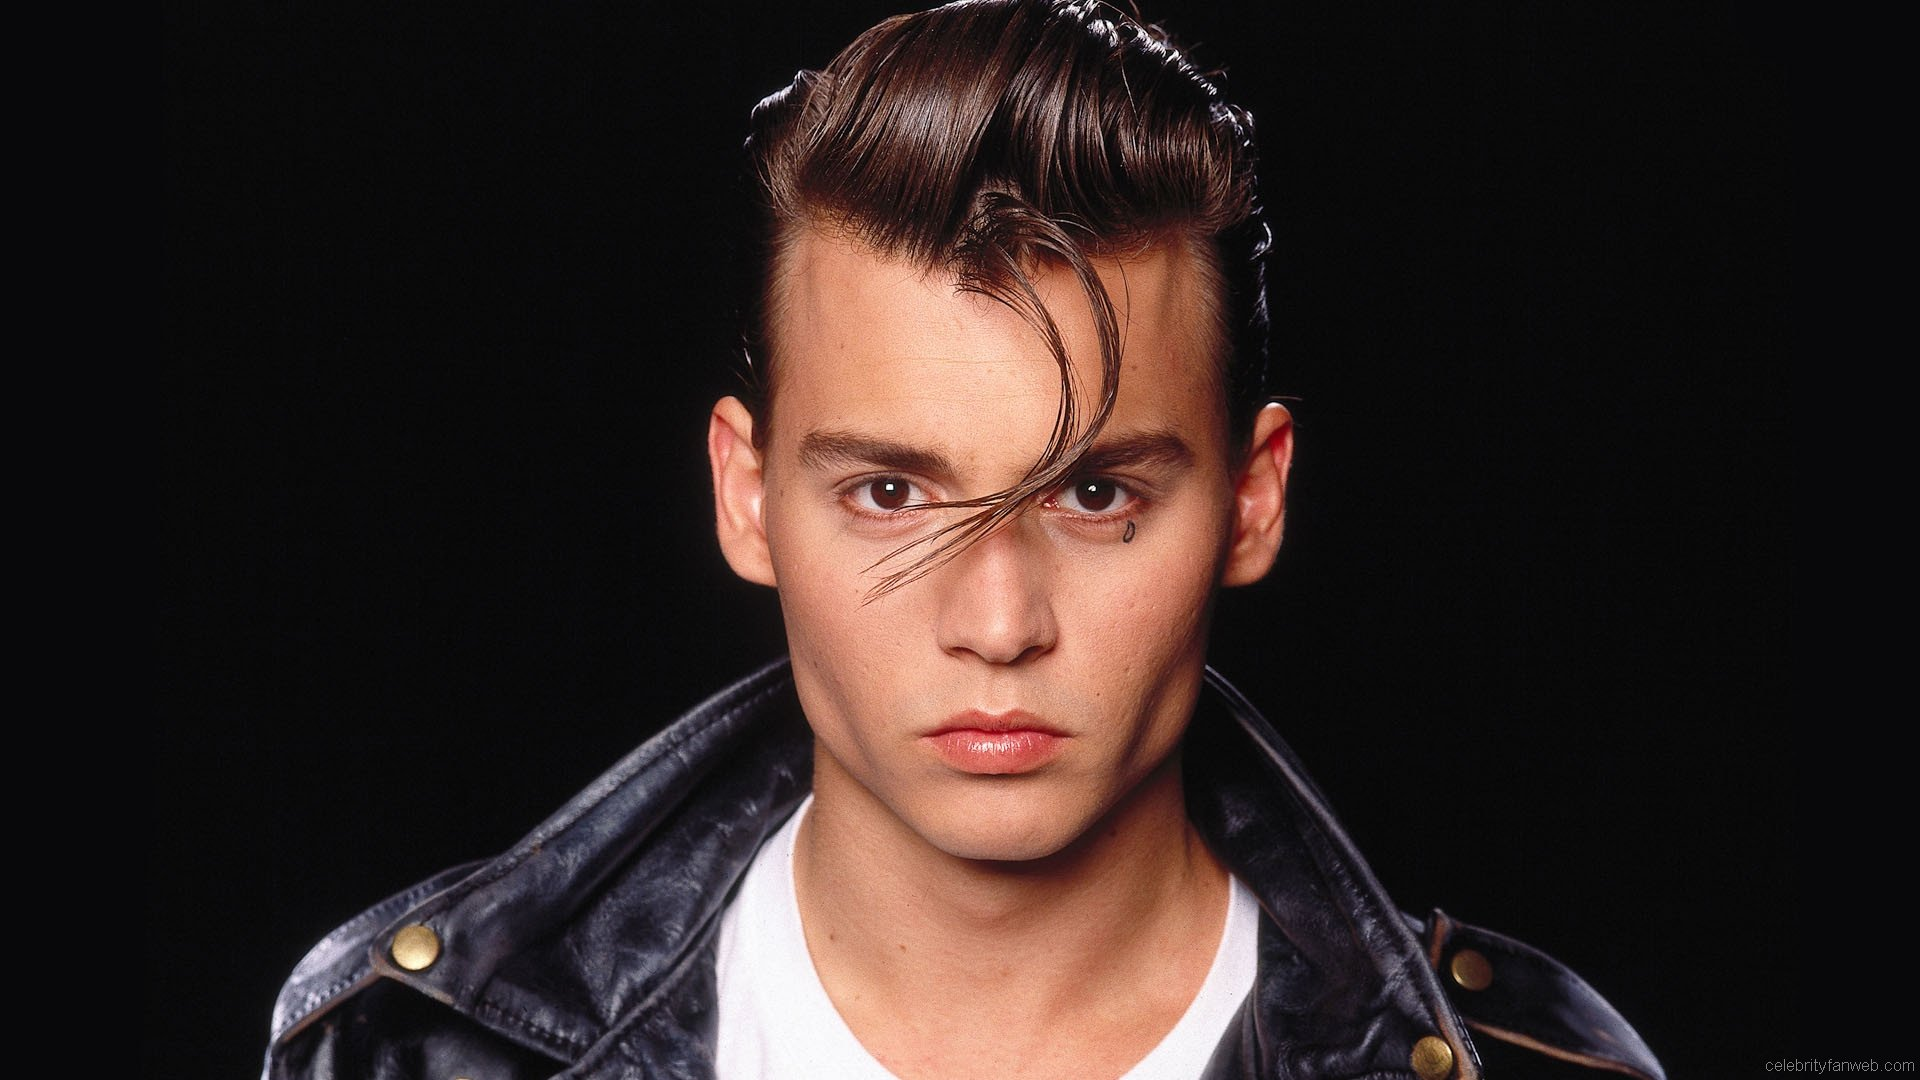 Johnny Depp Cry Baby Wallpaper